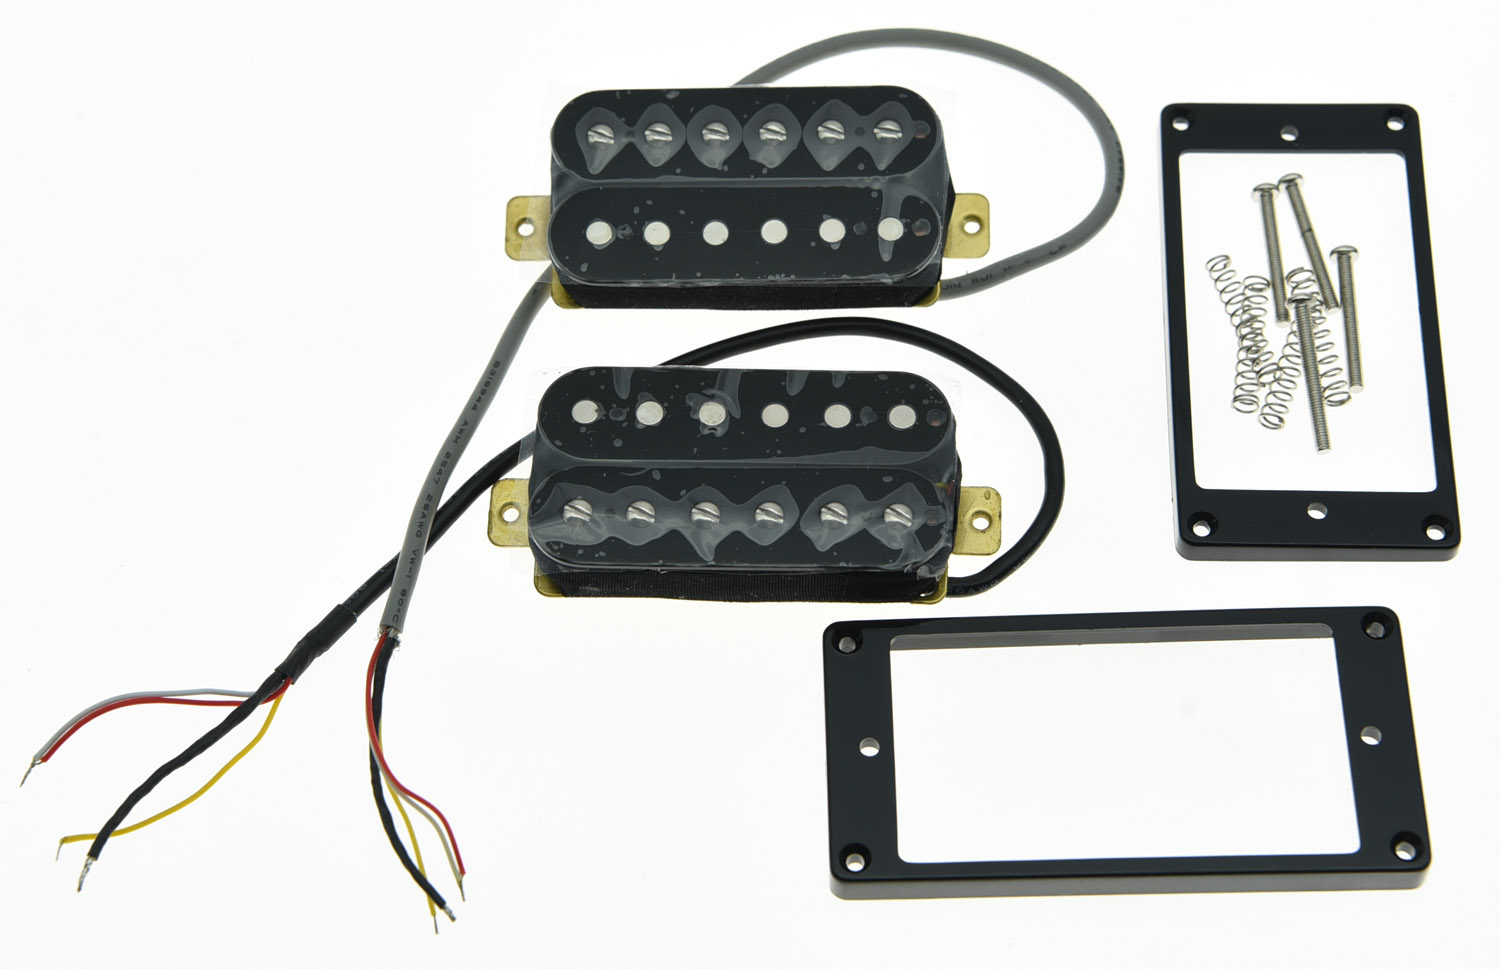 KAISH Set of 2 Black Alnico V Guitar Humbucker Neck&Bridge Pickup Power Sound Pickups виброплита vektor vpg 160